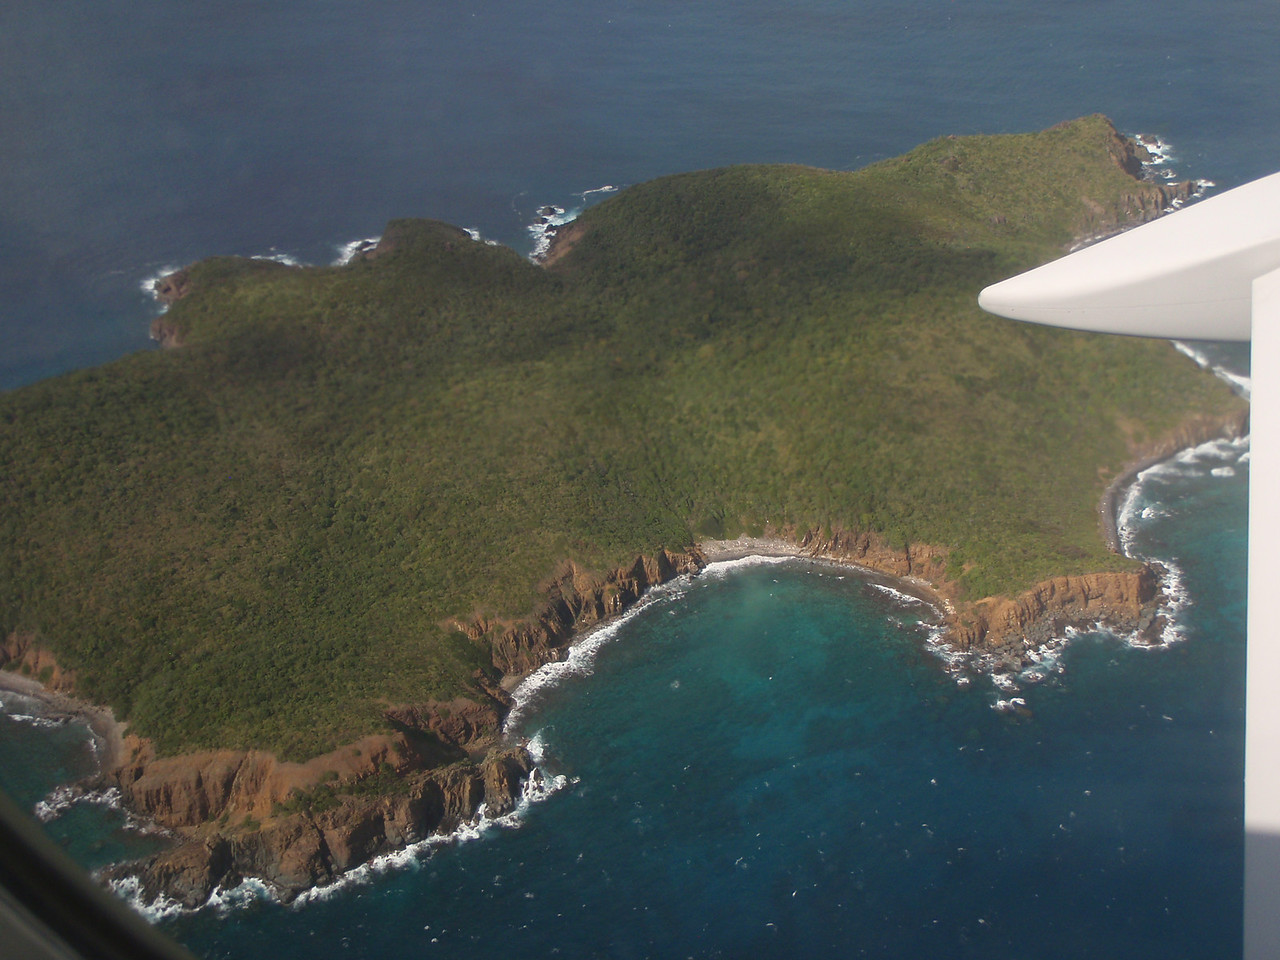 Great views of little islands just before landing.